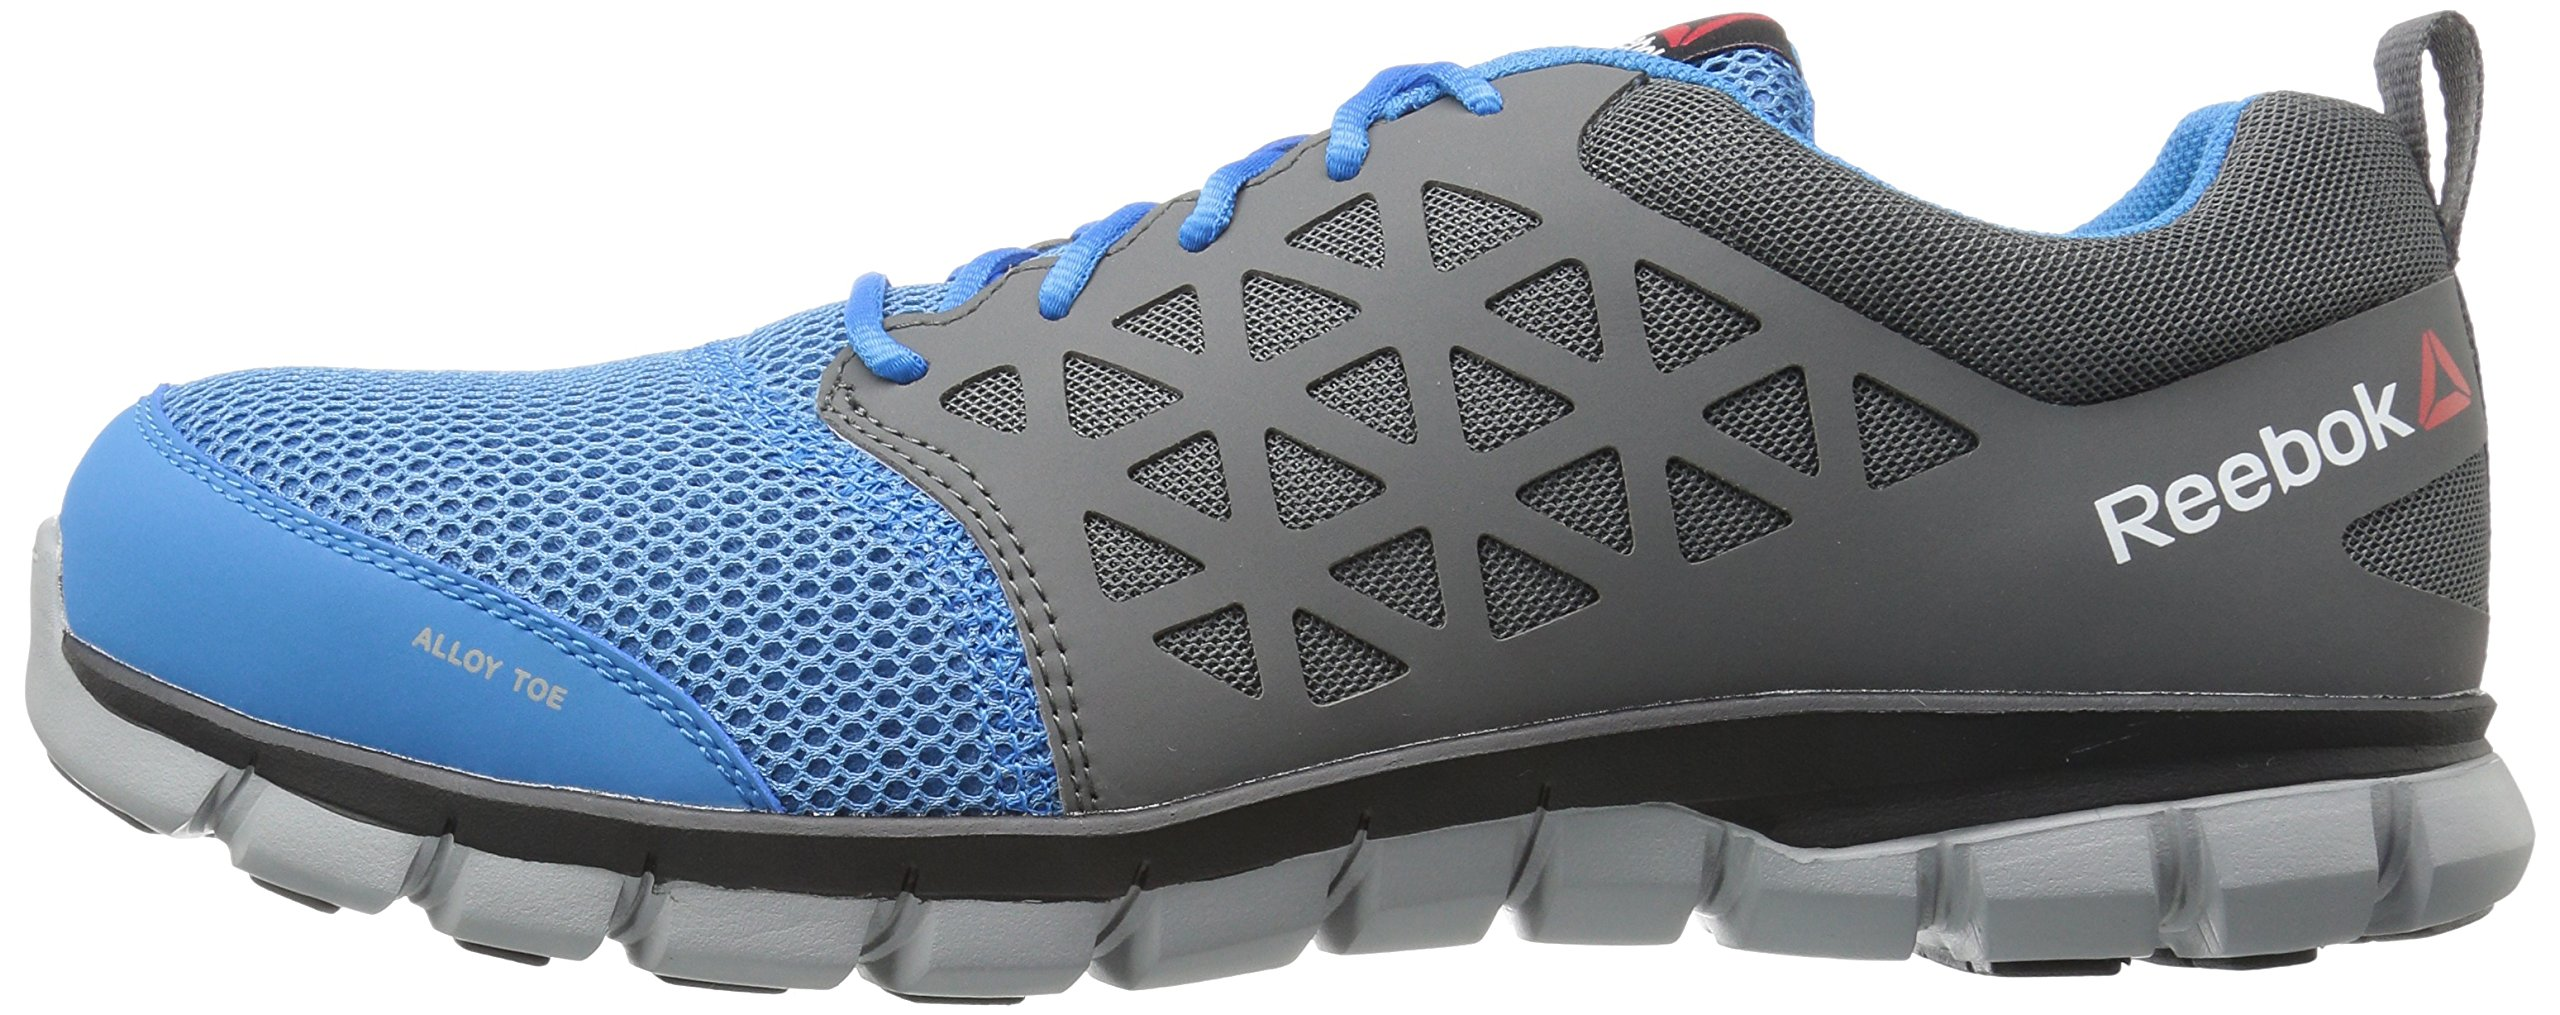 4d89a93ffdaf Reebok Work Men s Sublite Cushion Work RB4040 Industrial and Construction  Shoe